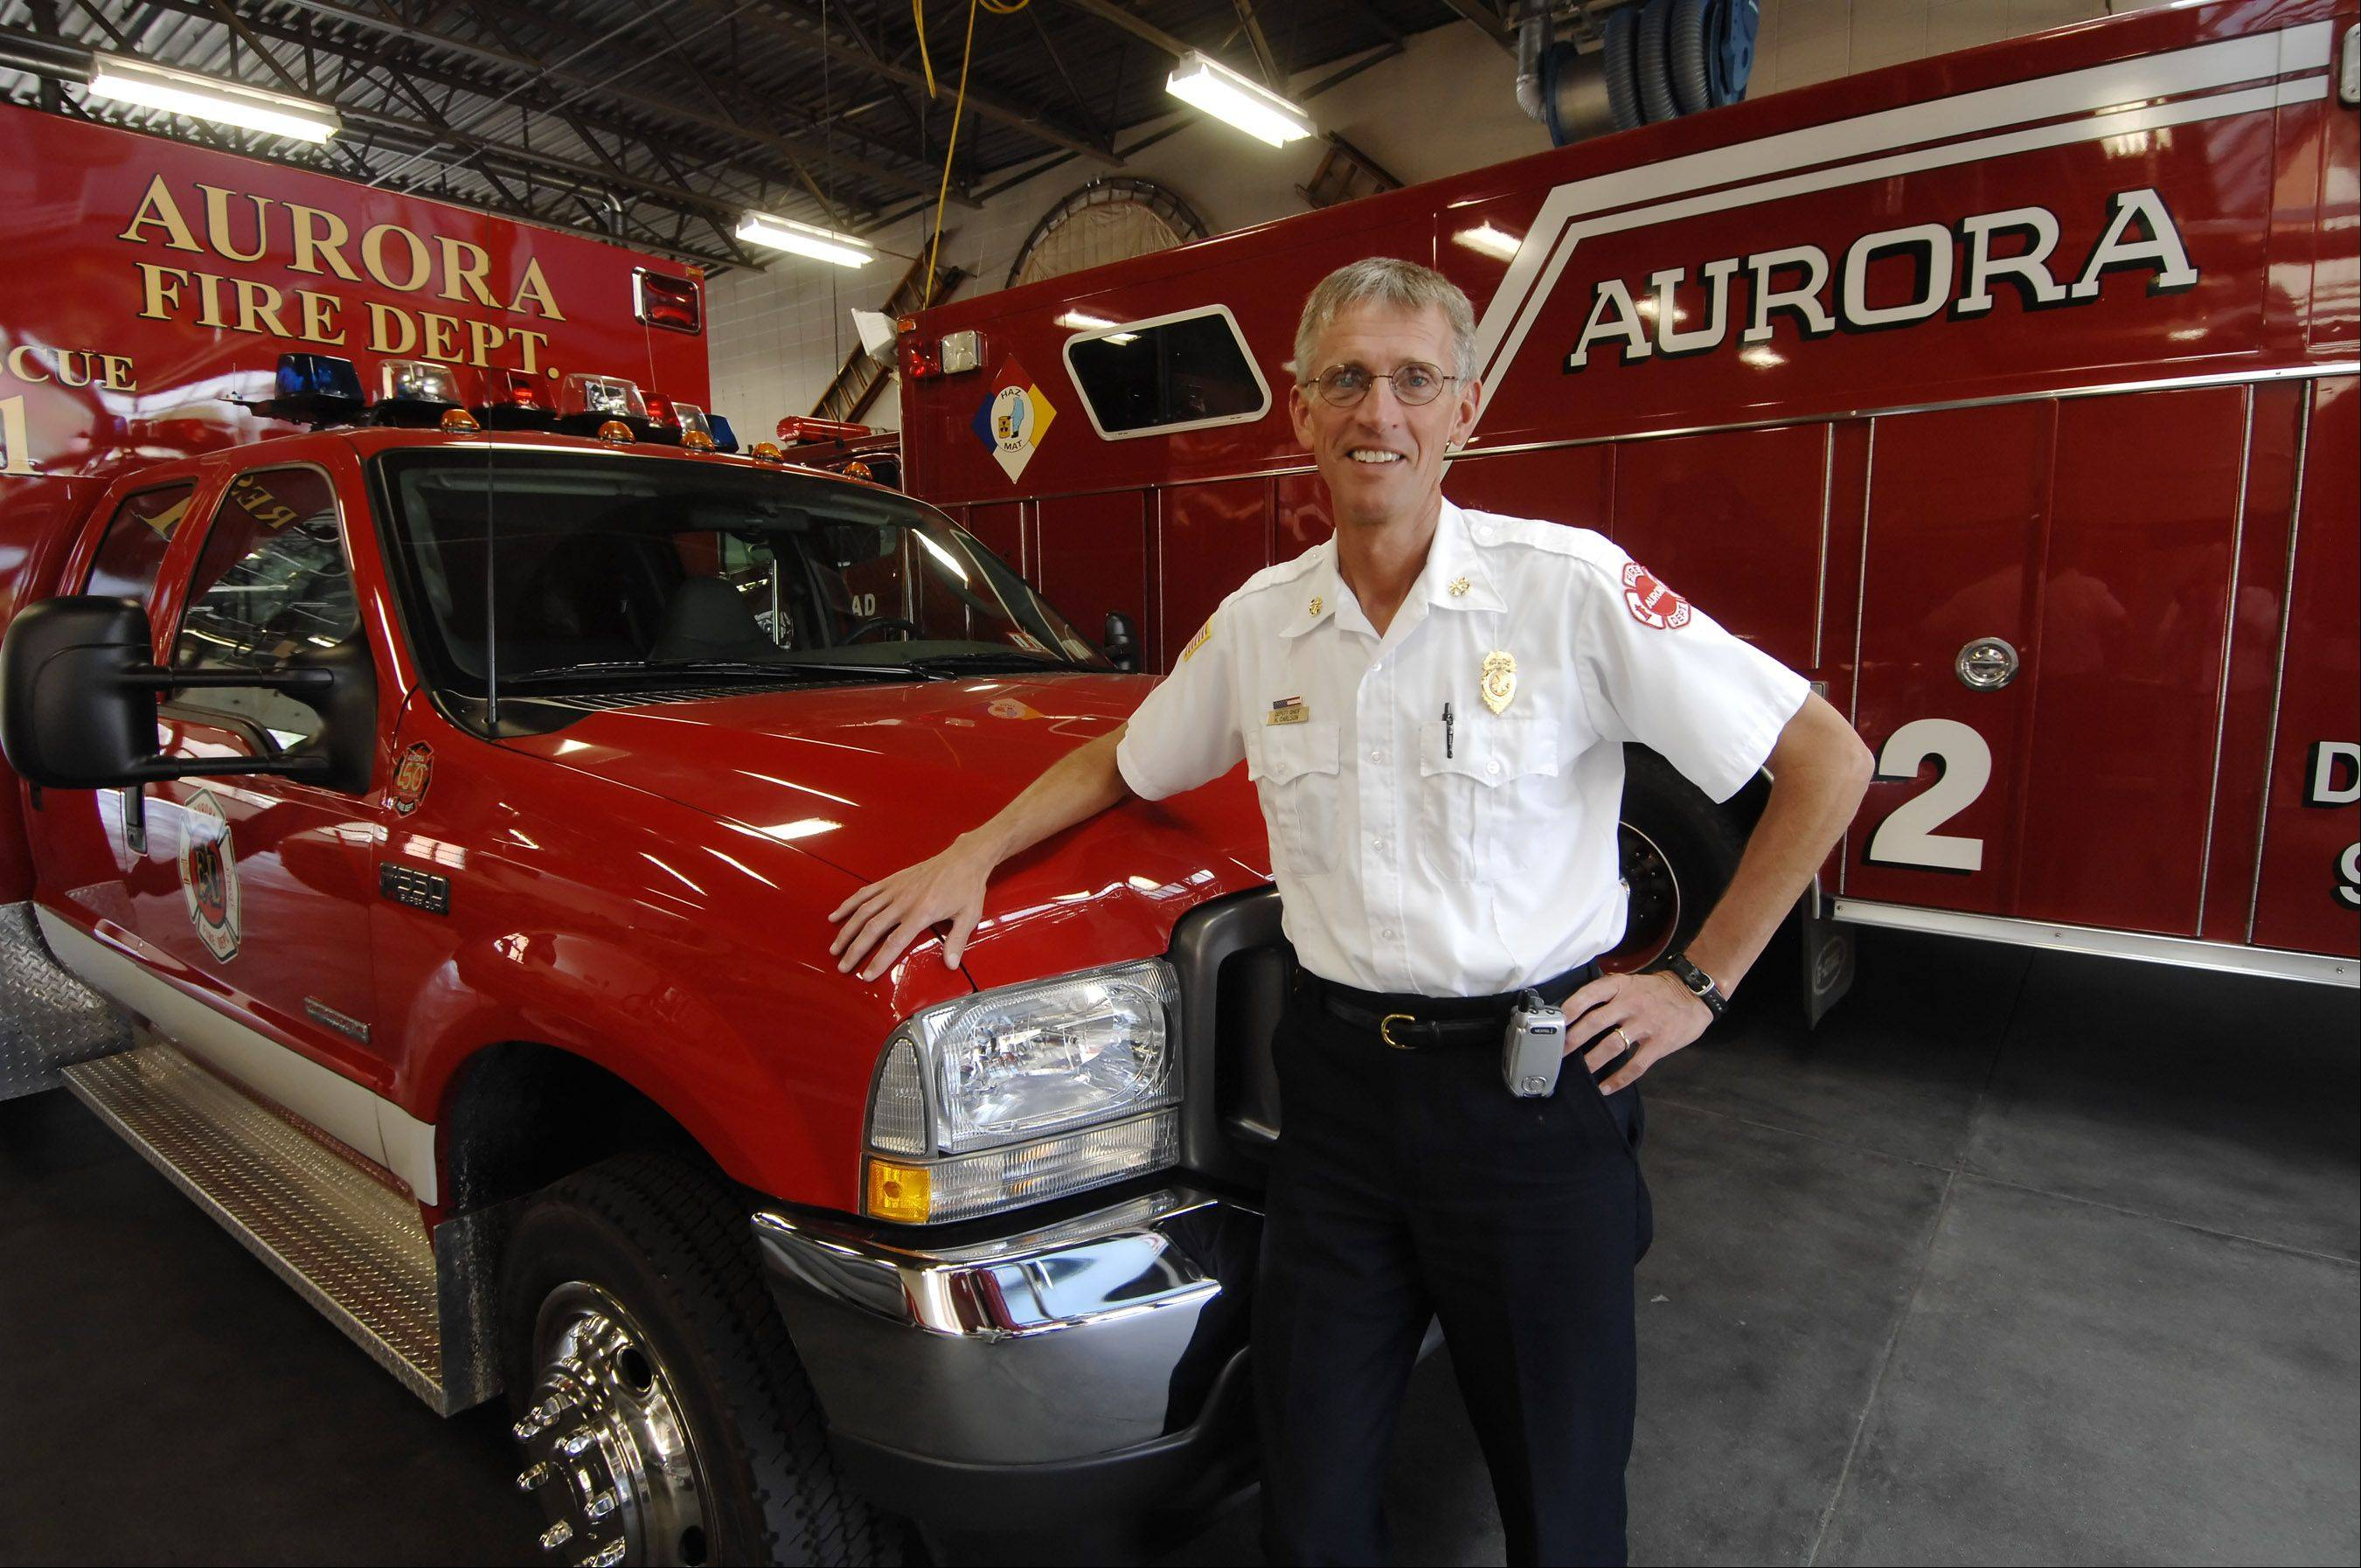 Hal Carlson, seen here in July 2009 as he began serving as Aurora fire chief, is retiring Thursday after 30 years with the department.